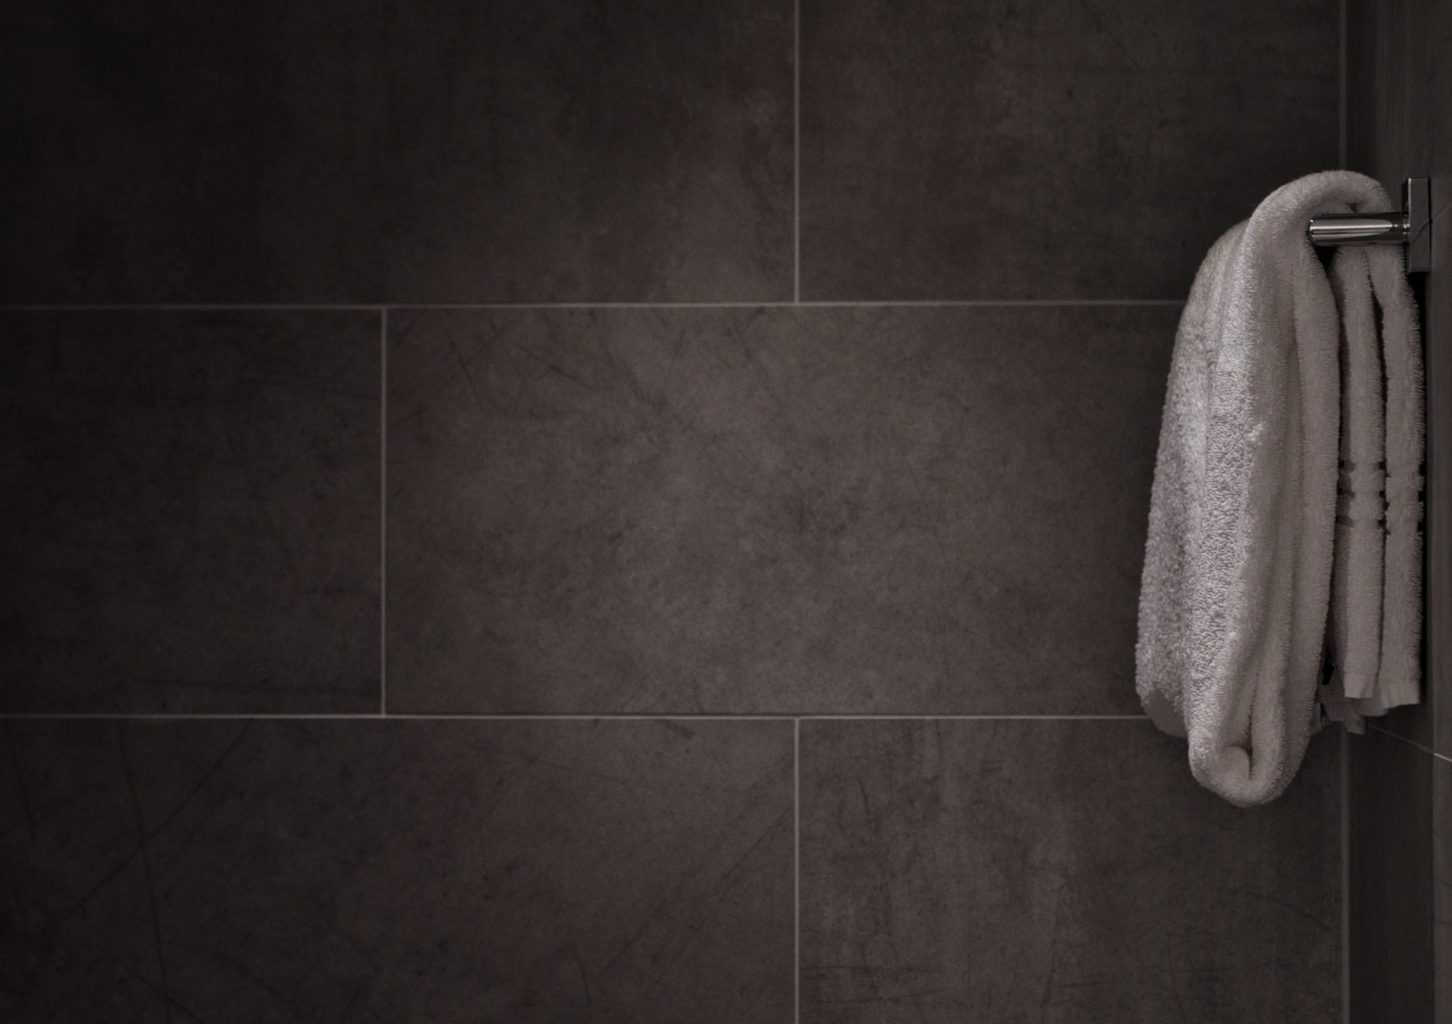 Black toned wall slate tiles with a towel hanged